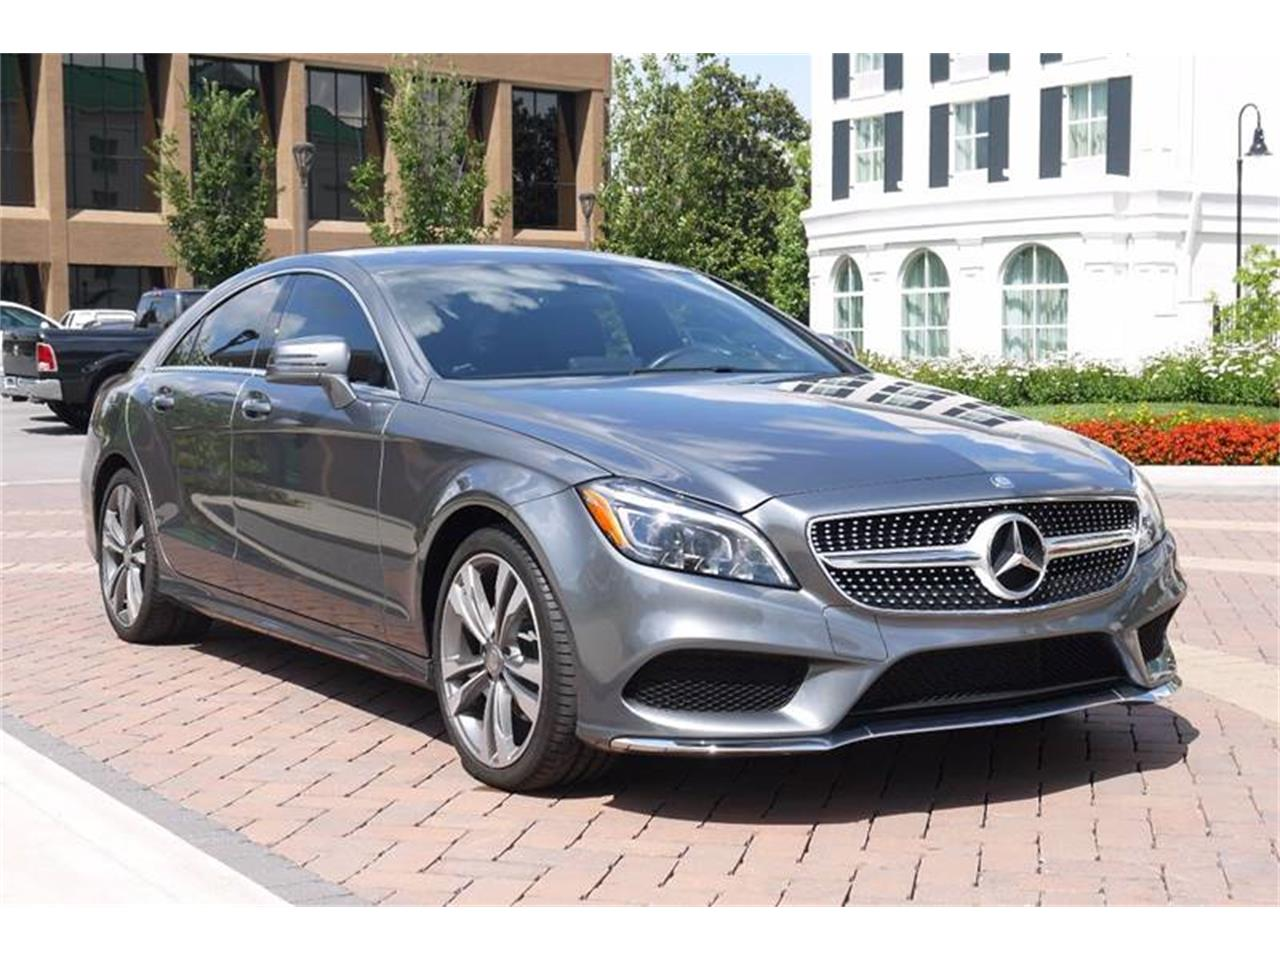 Large Picture of '16 Mercedes-Benz CLS-Class located in Tennessee Offered by Arde Motorcars - LEUE